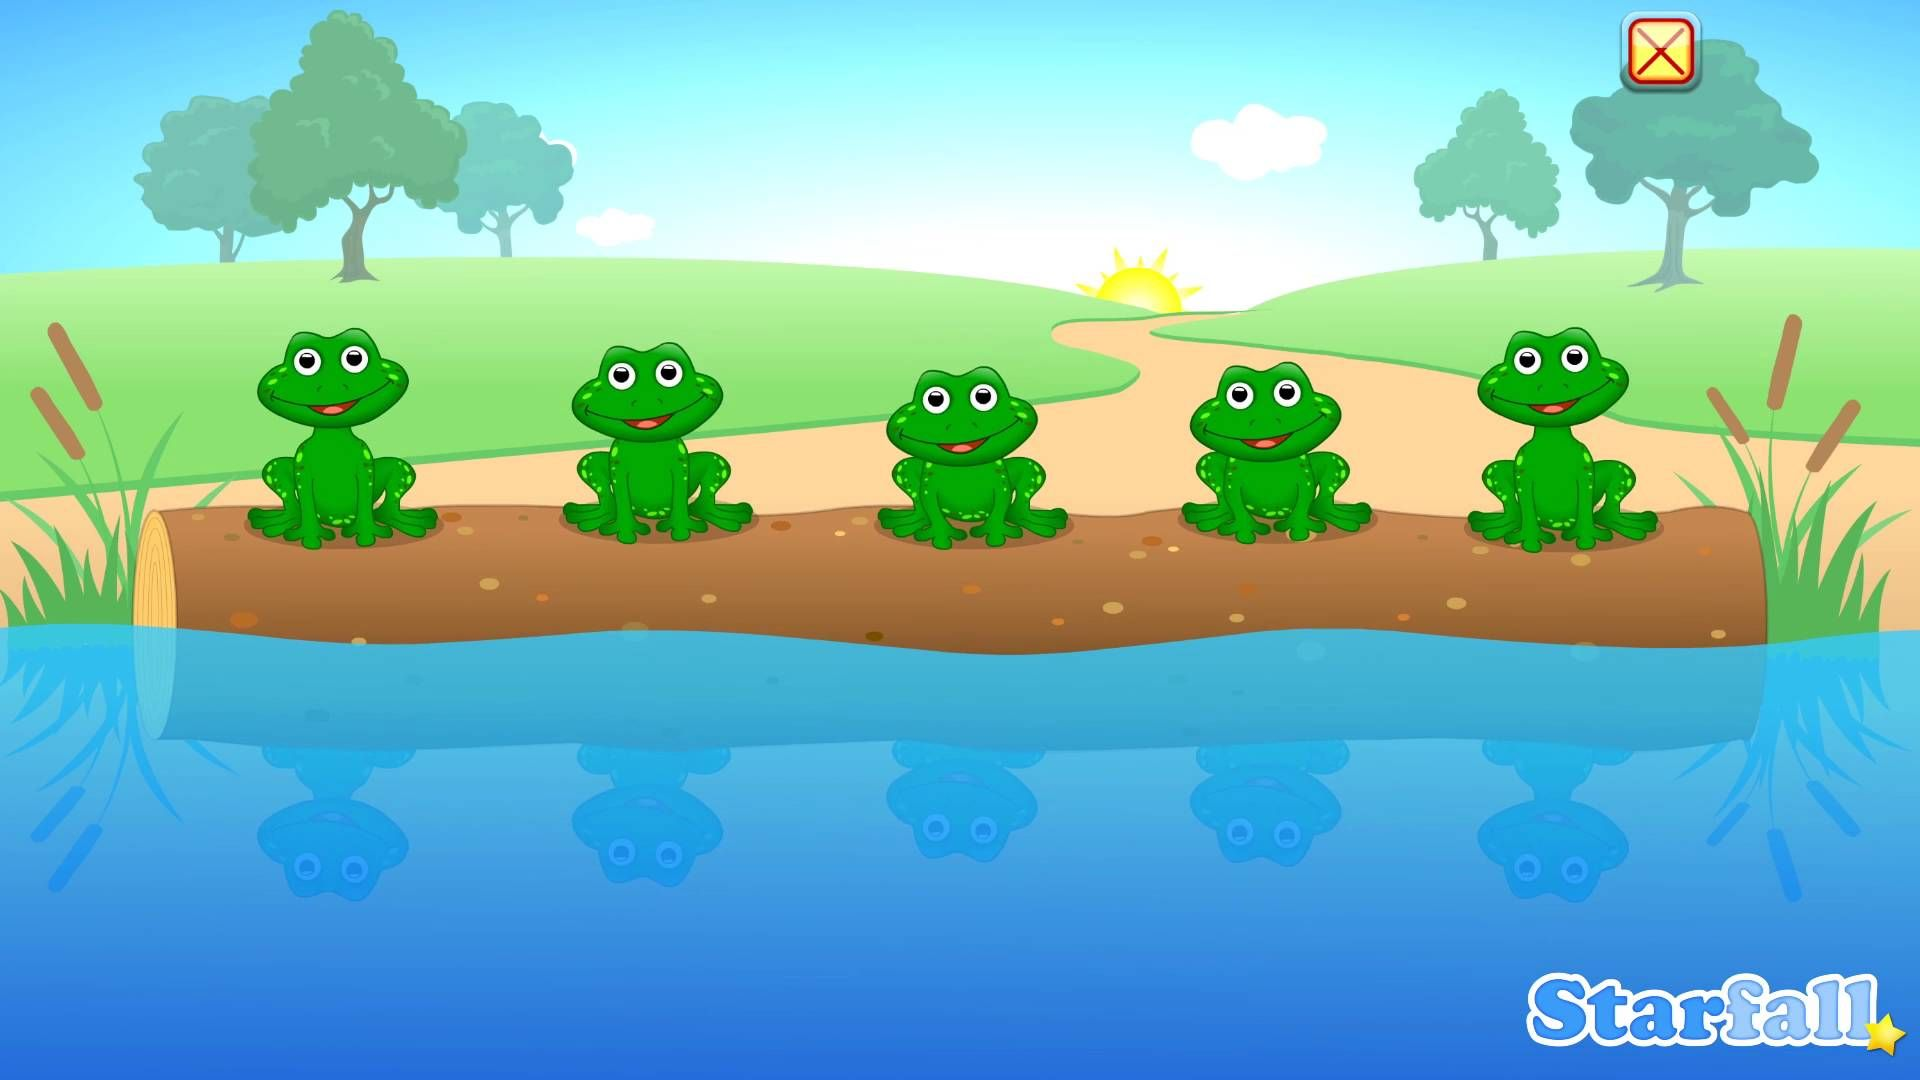 5 Little Speckled Frogs By Starfall